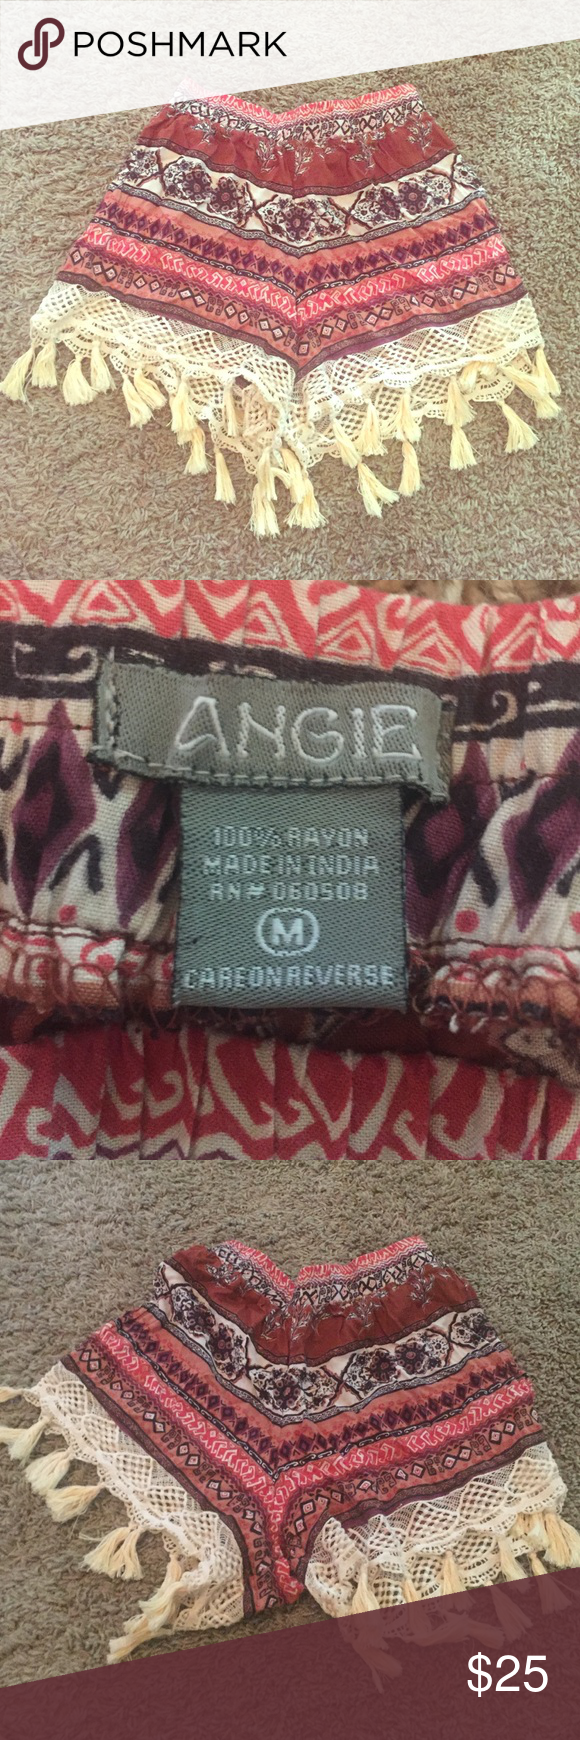 ANGIE Boho Shorts Never worn before, have been sitting in my closet and don't really need them since its cold where I live. Angie Shorts